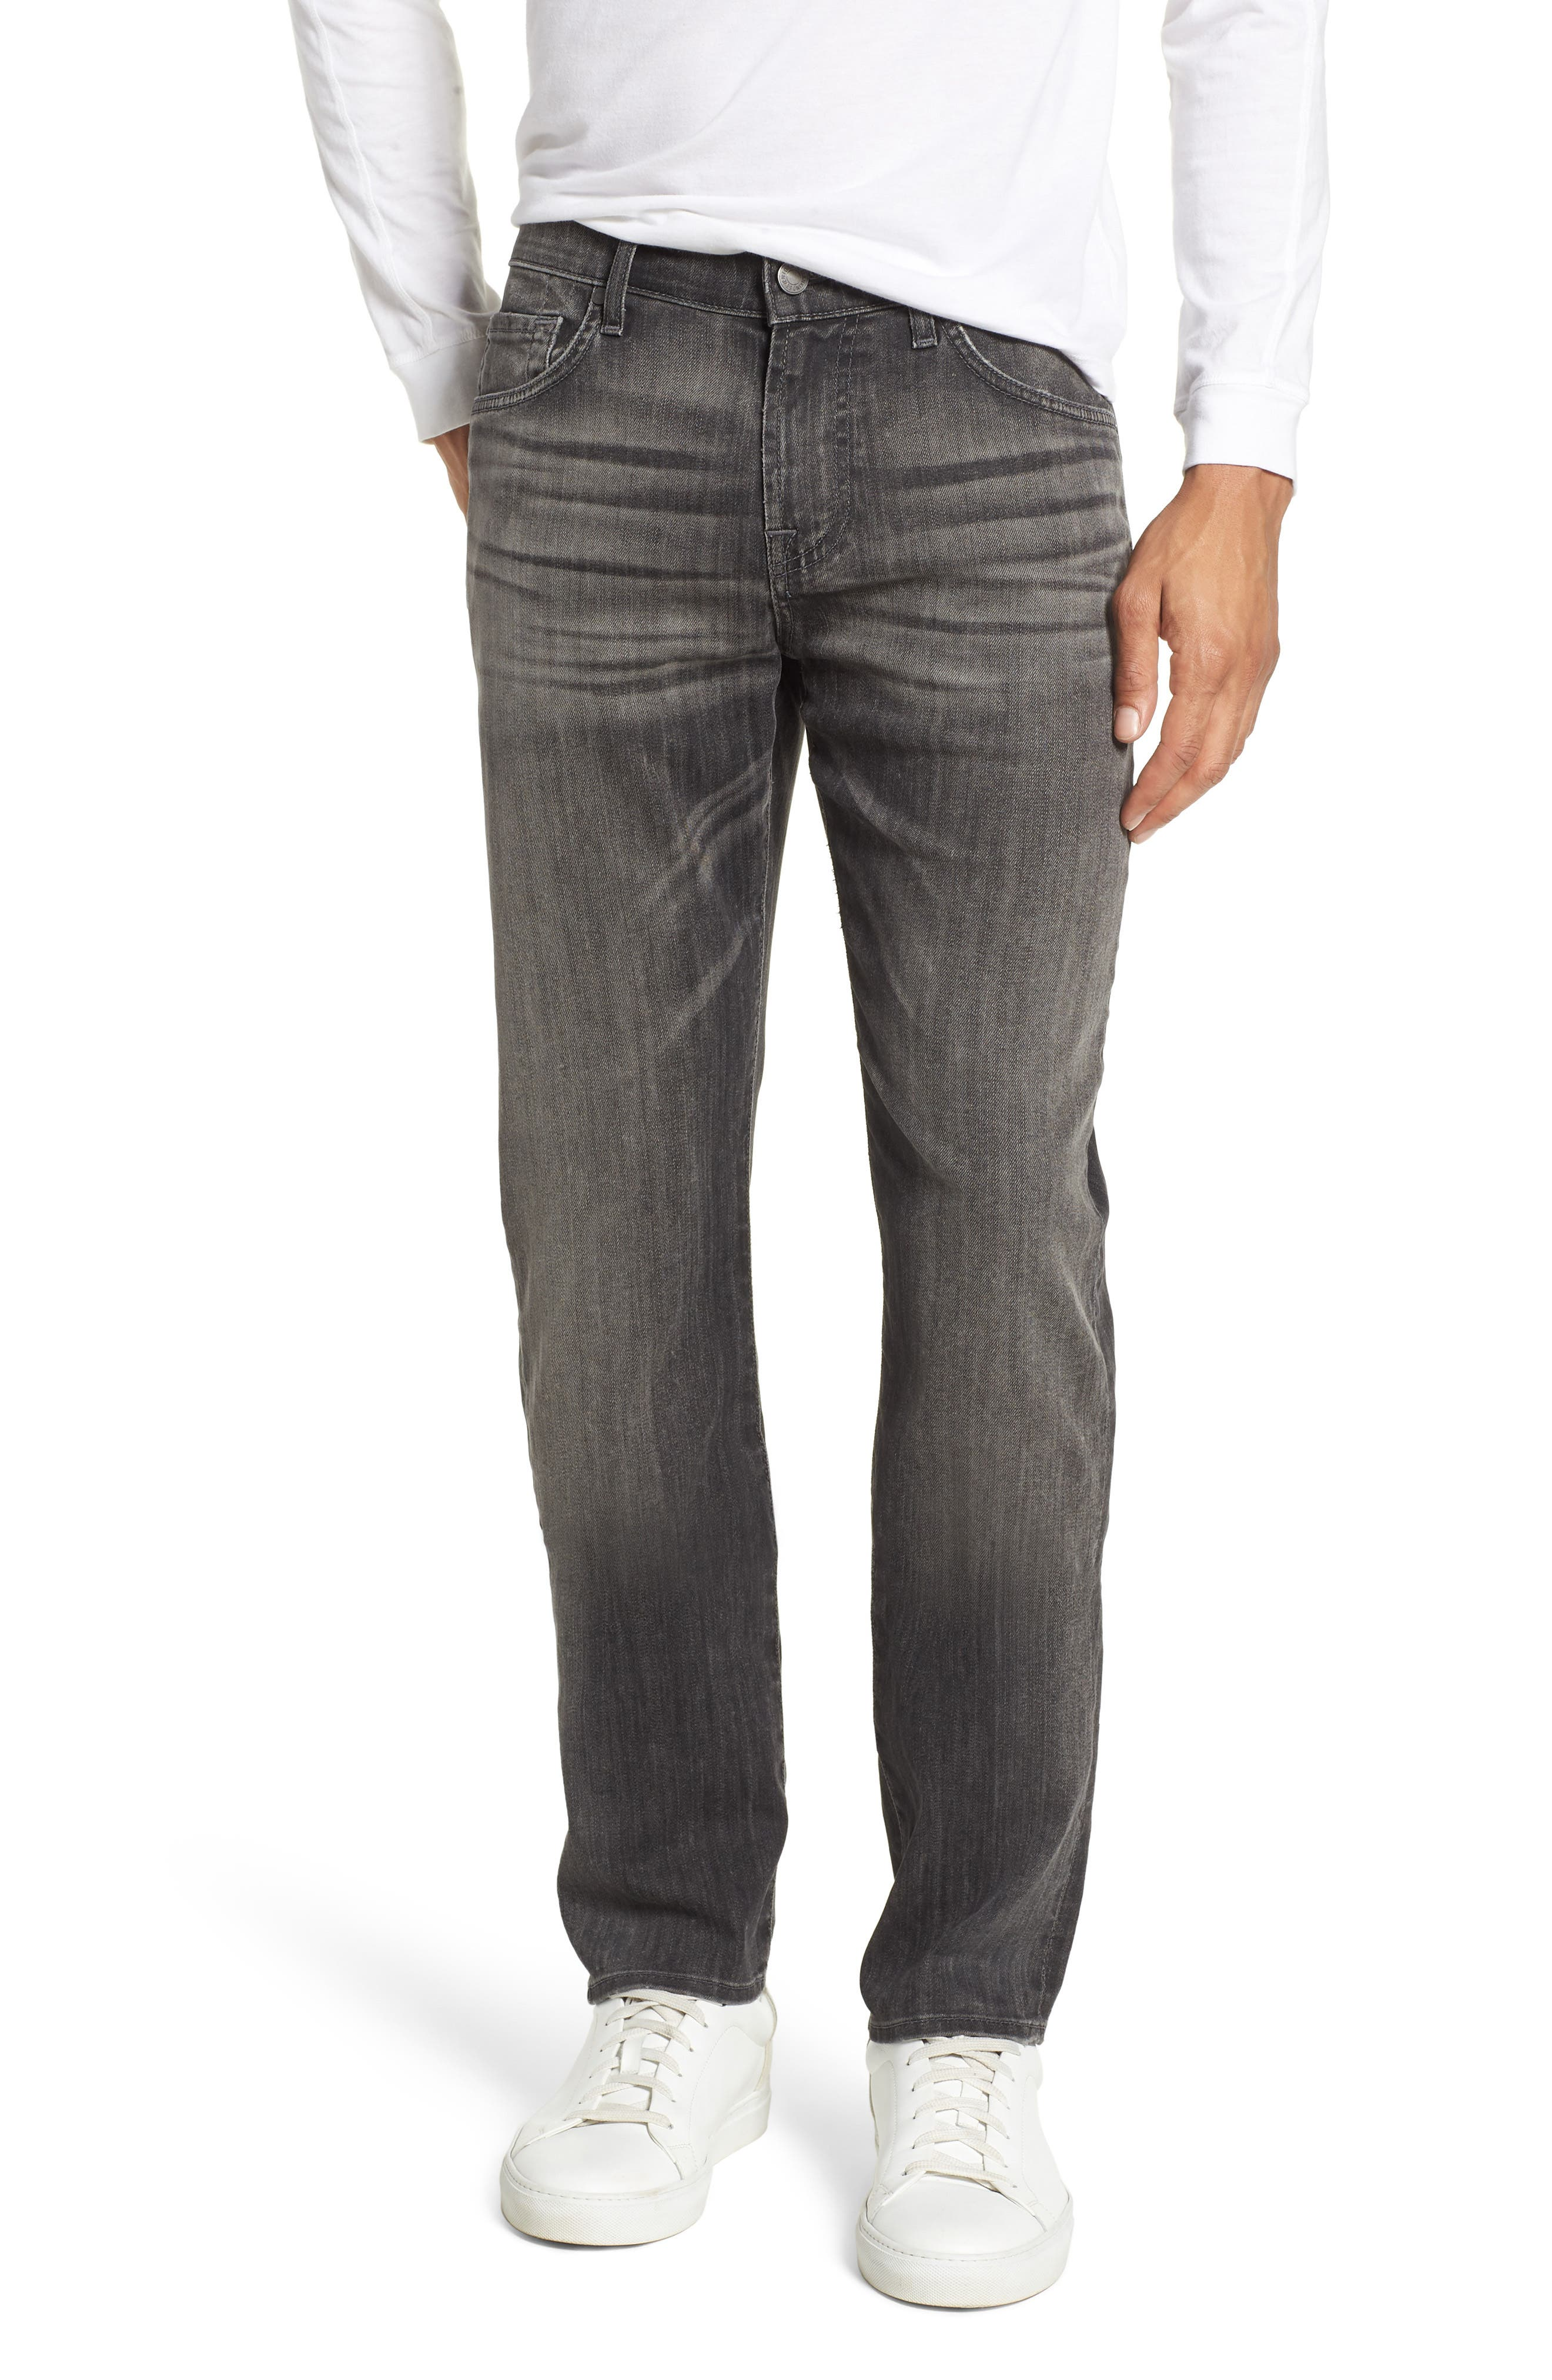 Main Image - 7 For All Mankind® The Straight Slim Straight Leg Jeans (Halide Grey)